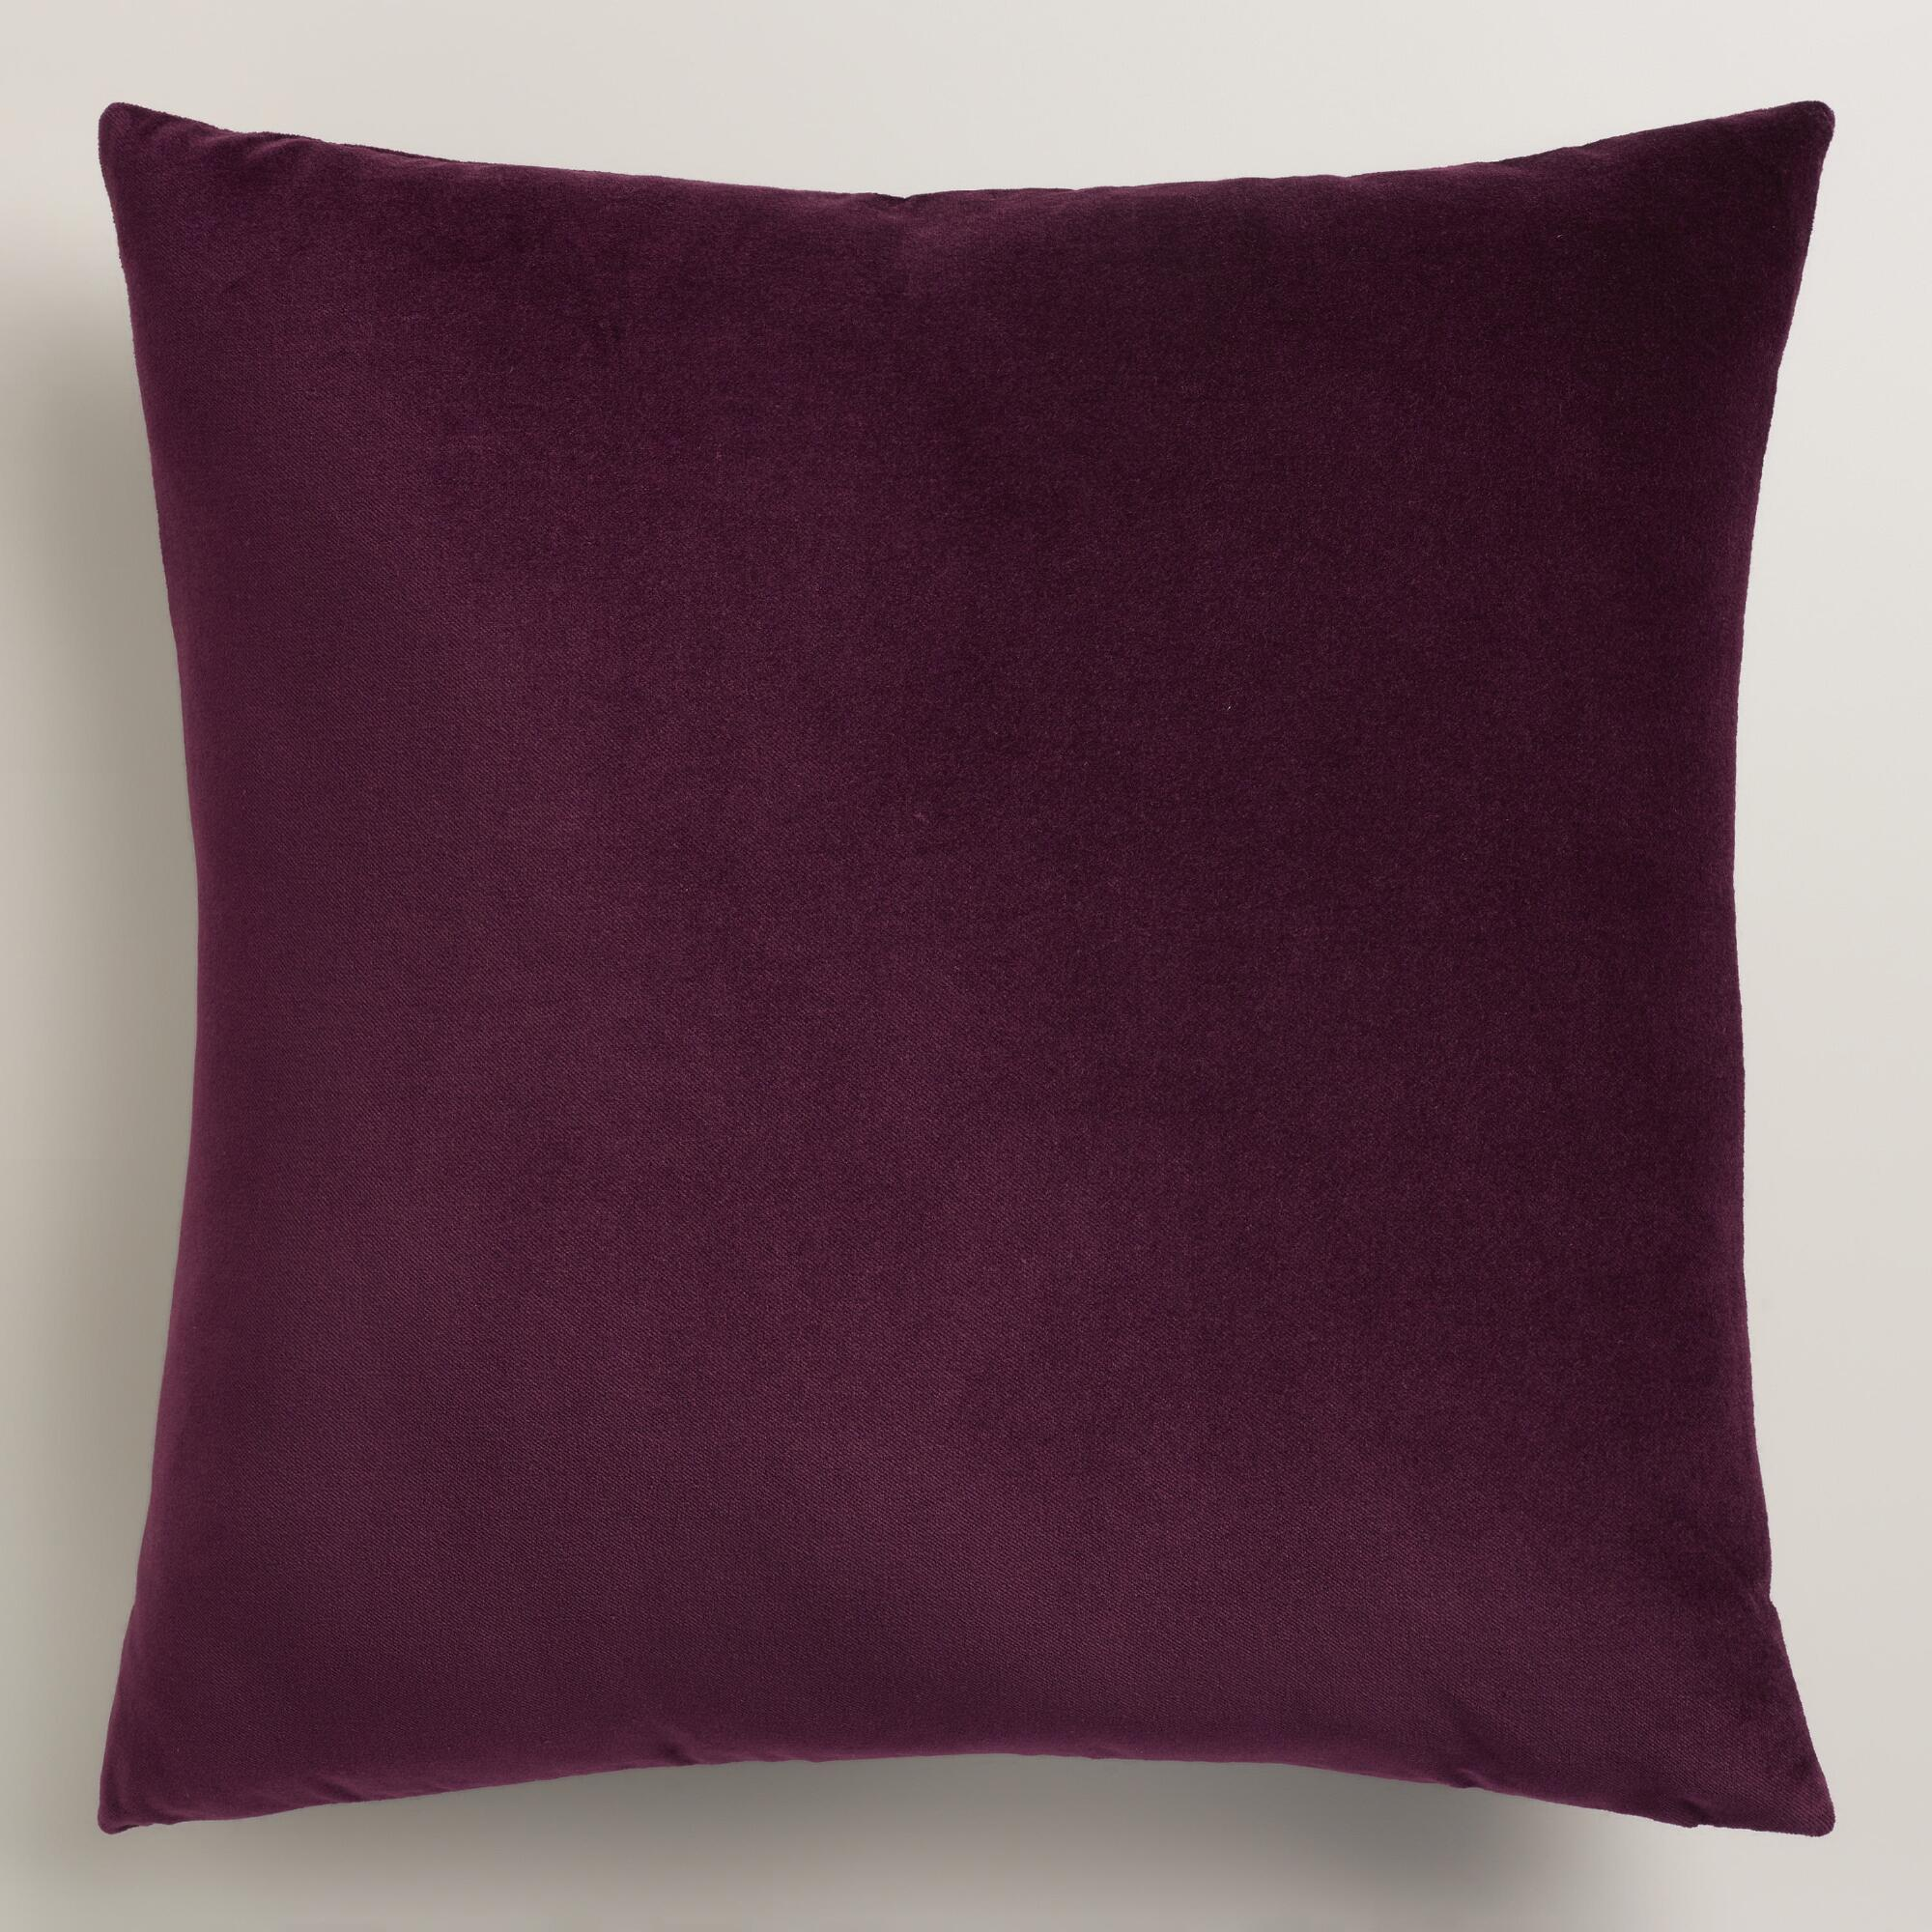 Lavender Velvet Throw Pillow : Our Local Ad Wish List Blog World Market Explorer #DISCOVERWORLDMARKET Inspiration